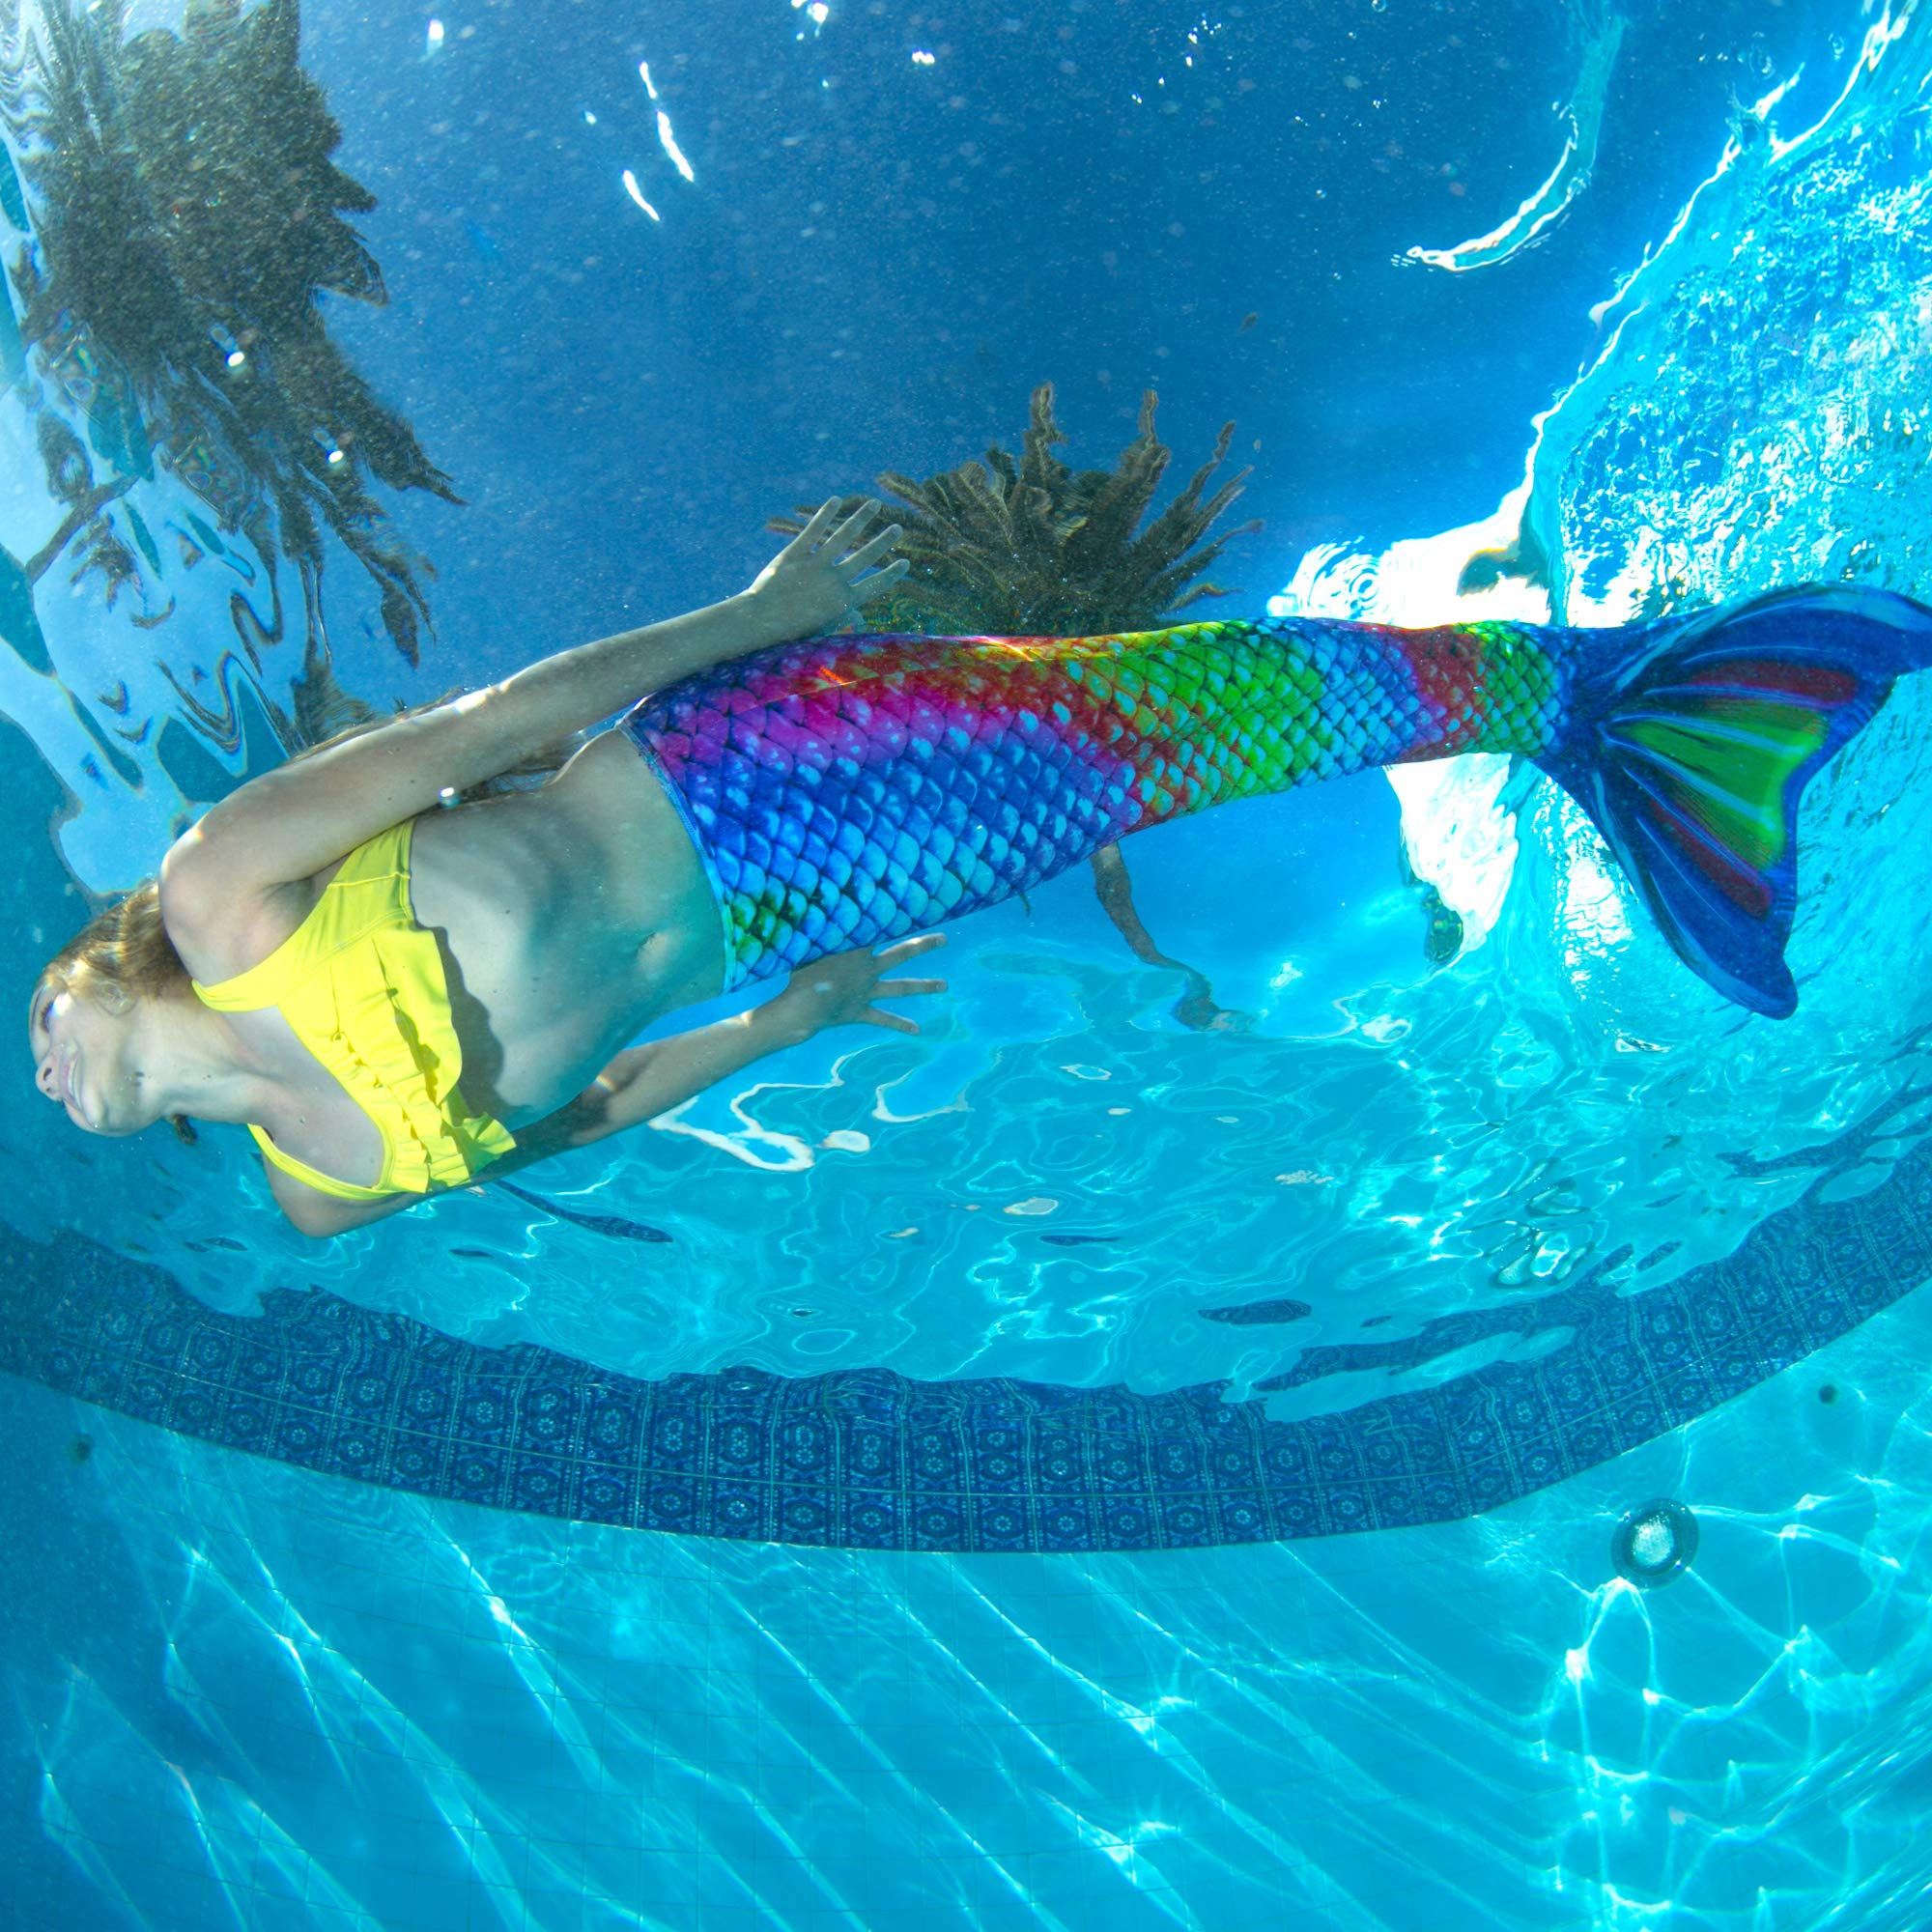 Fin Fun Mermaid Tail, Reinforced Tips, with Monofin, New Rainbow Reef, Adult XS by Fin Fun (Image #5)